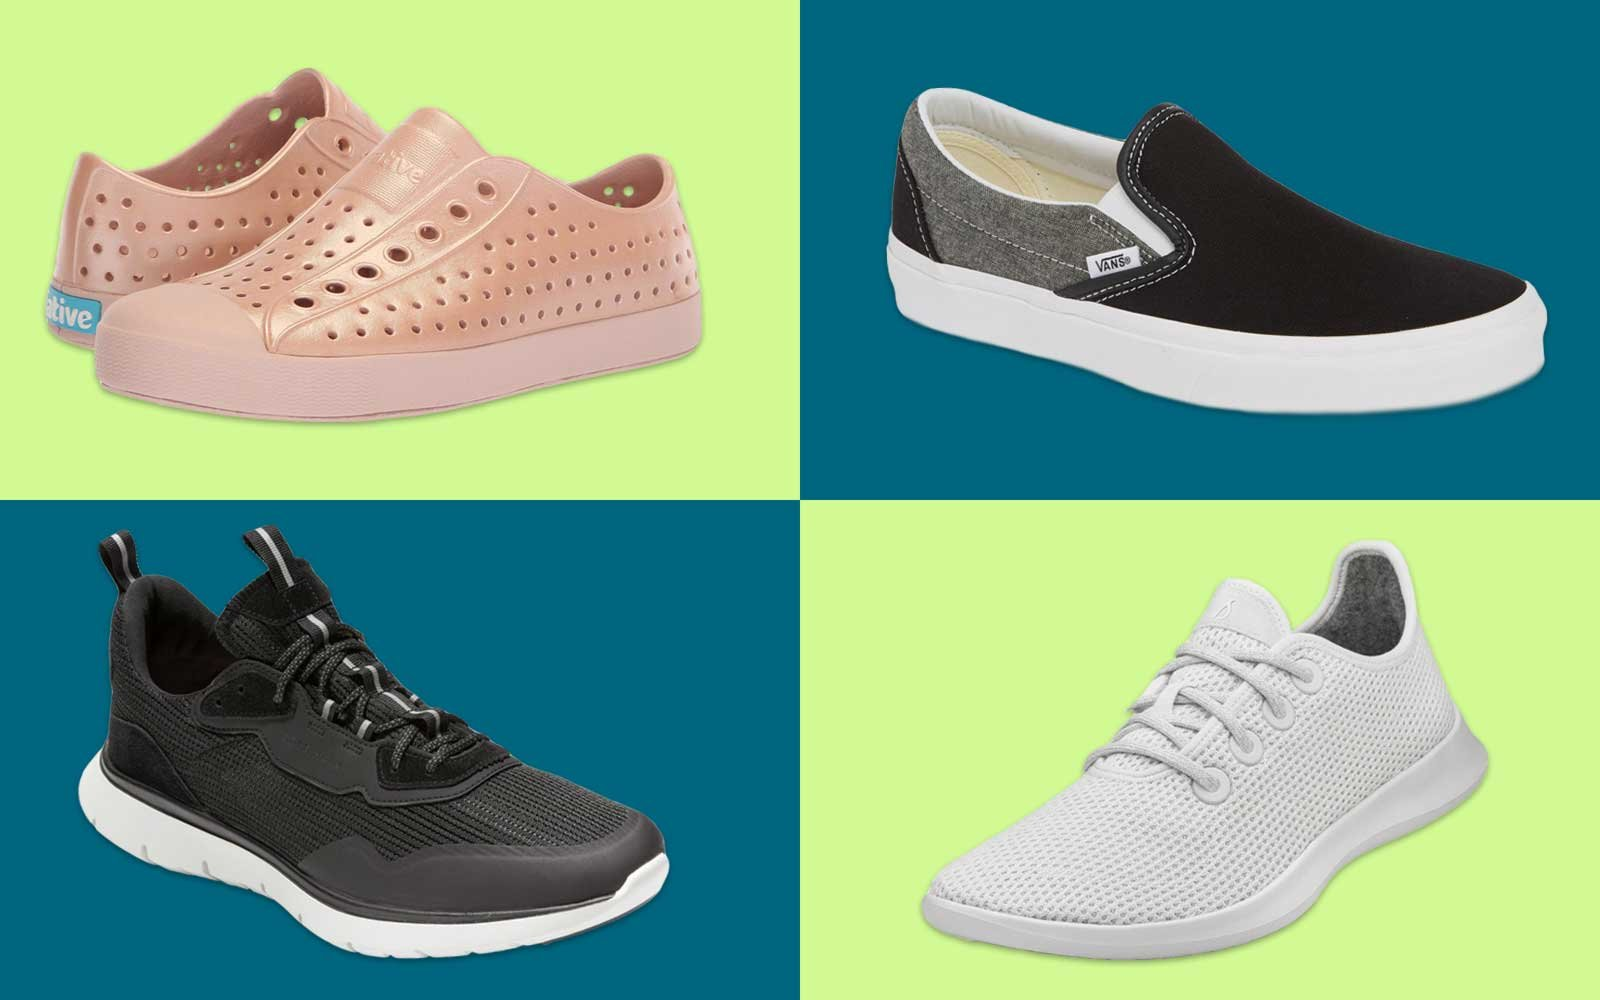 22c9a60f27161 These 11 Shoe Brands Make the Most Comfortable Sneakers | Travel + ...